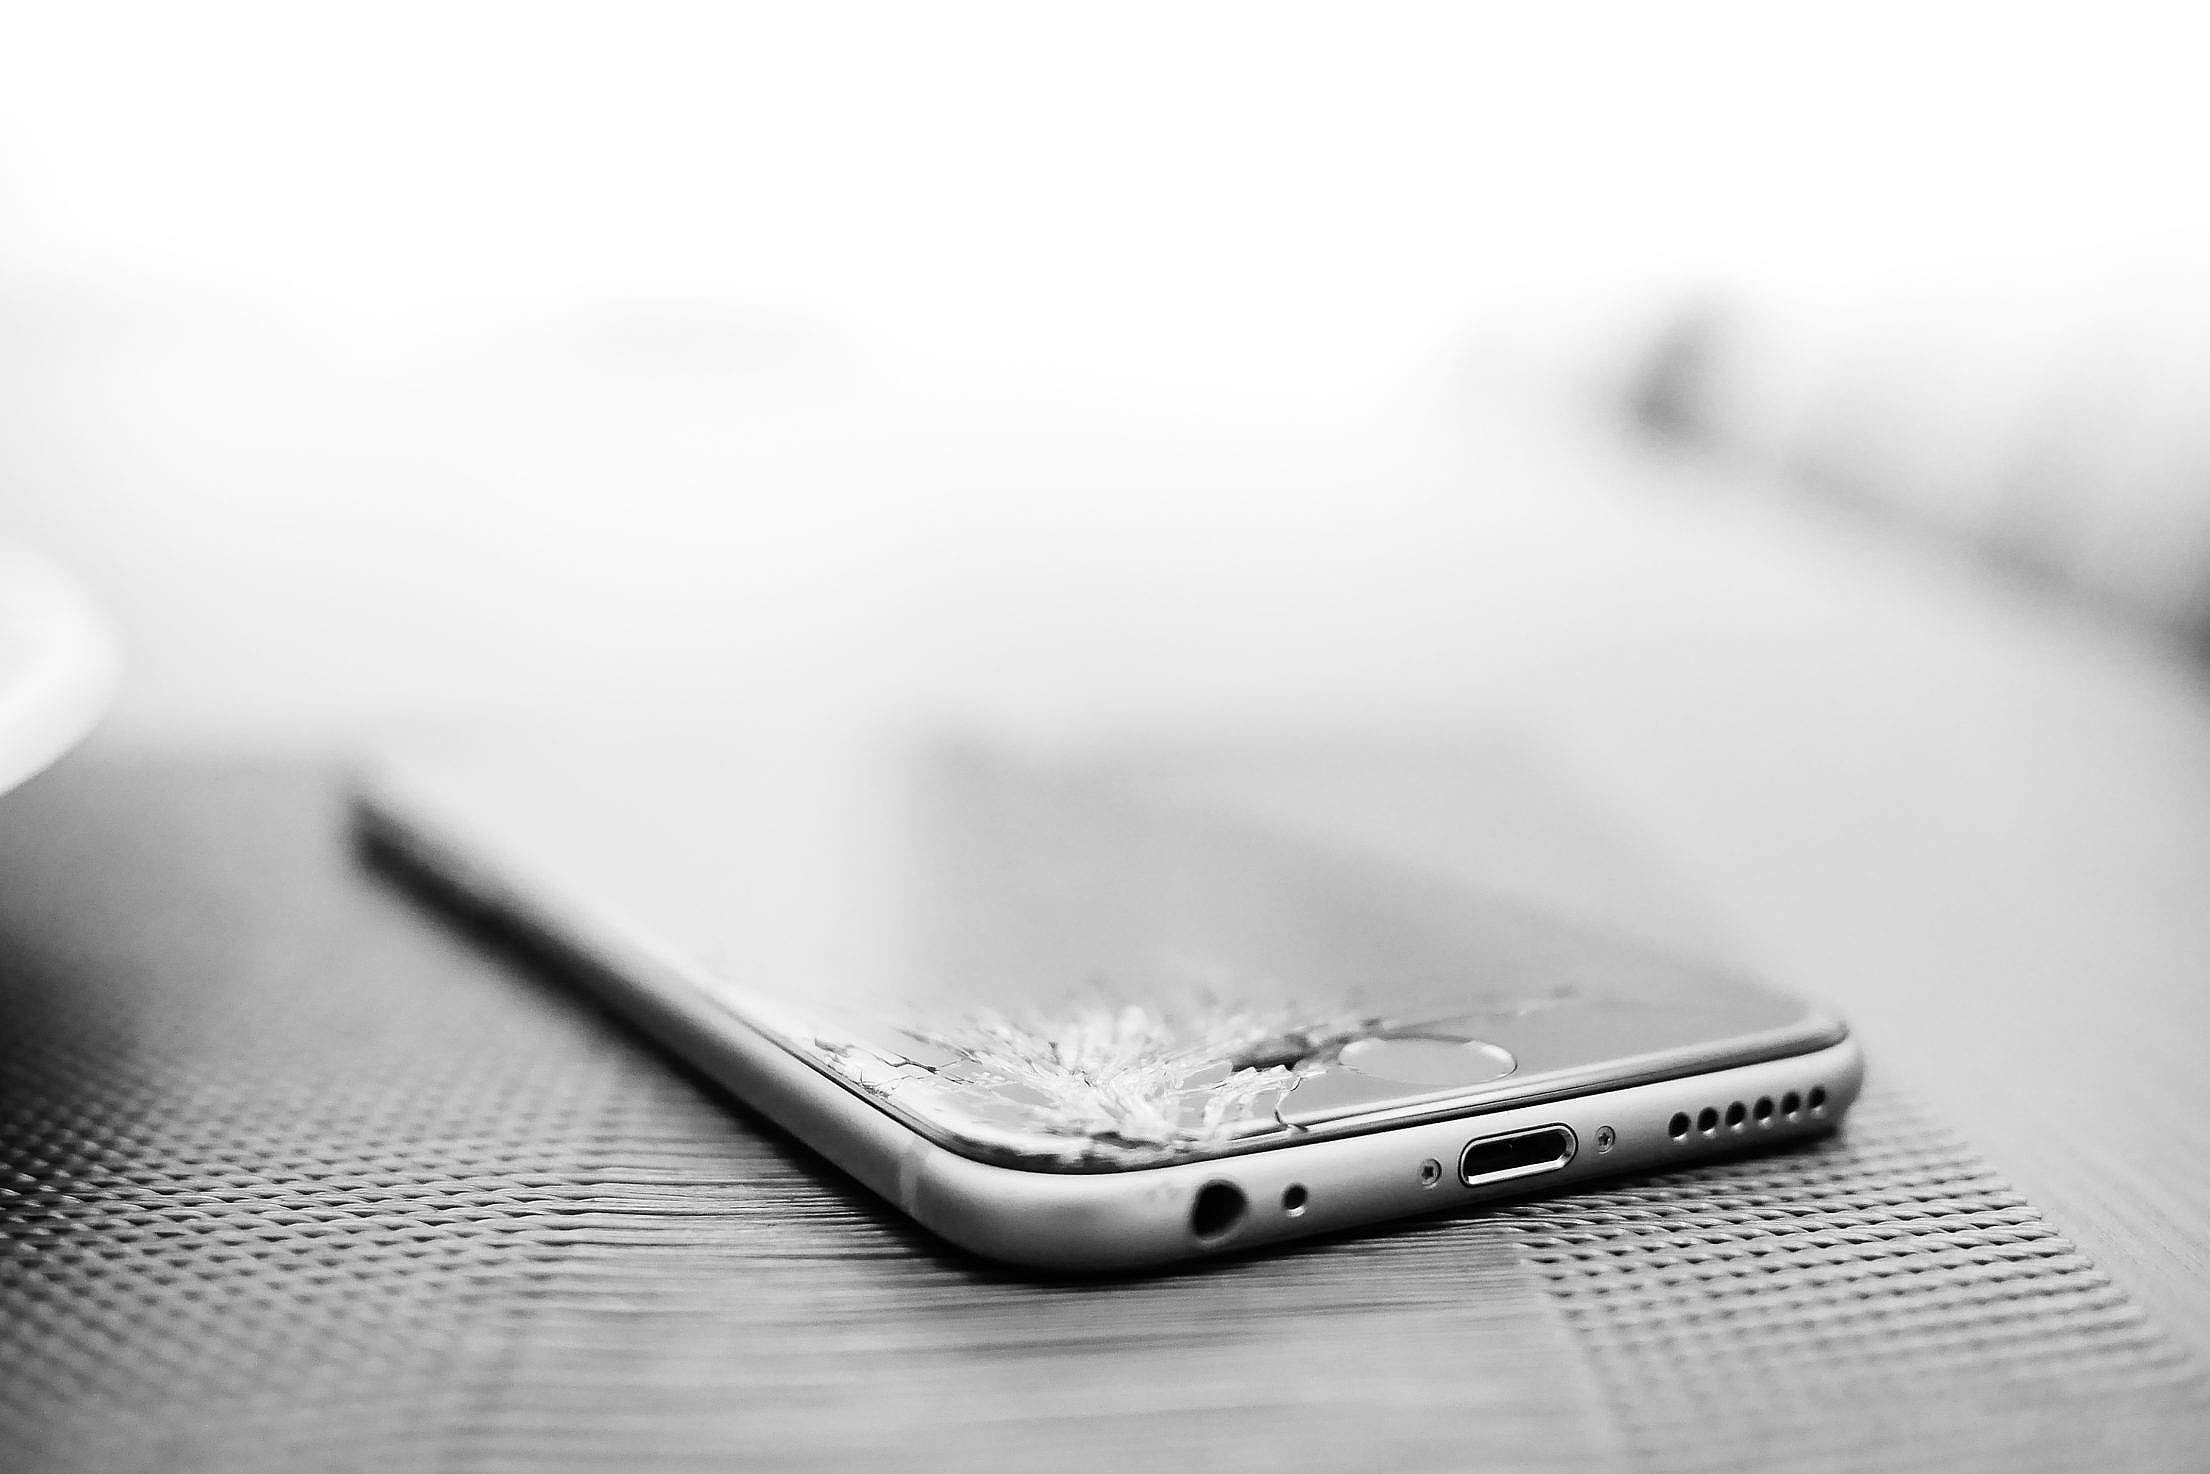 Minimalistic Crashed iPhone with Cracked Screen Free Stock Photo